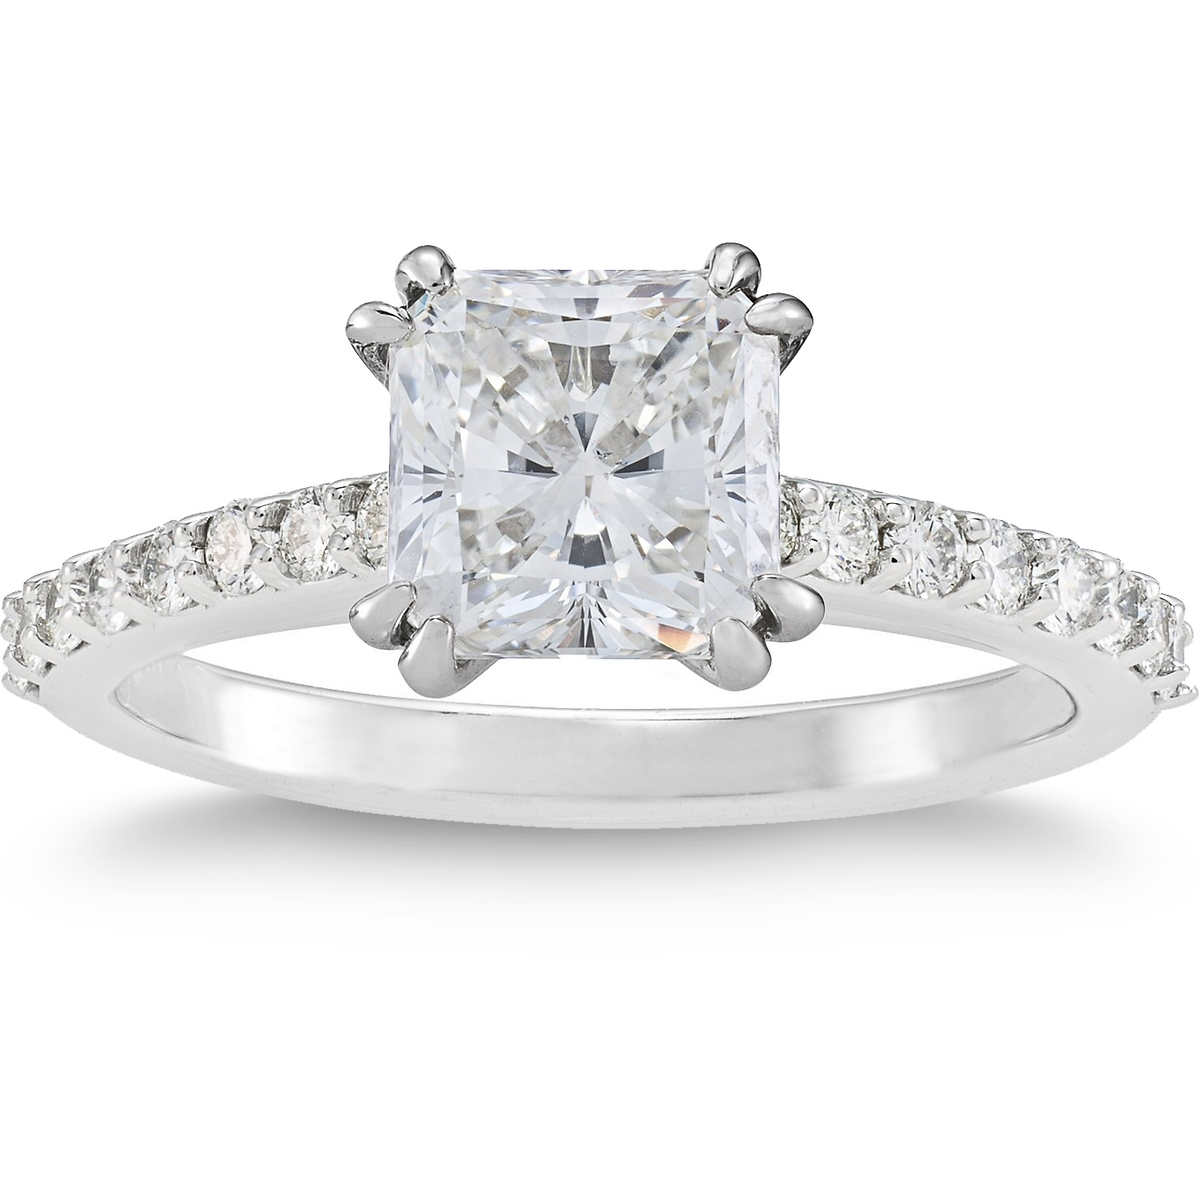 371 Ctw Radiant Cut Vvs2 Clarity, H Color Diamond Platinum Ring